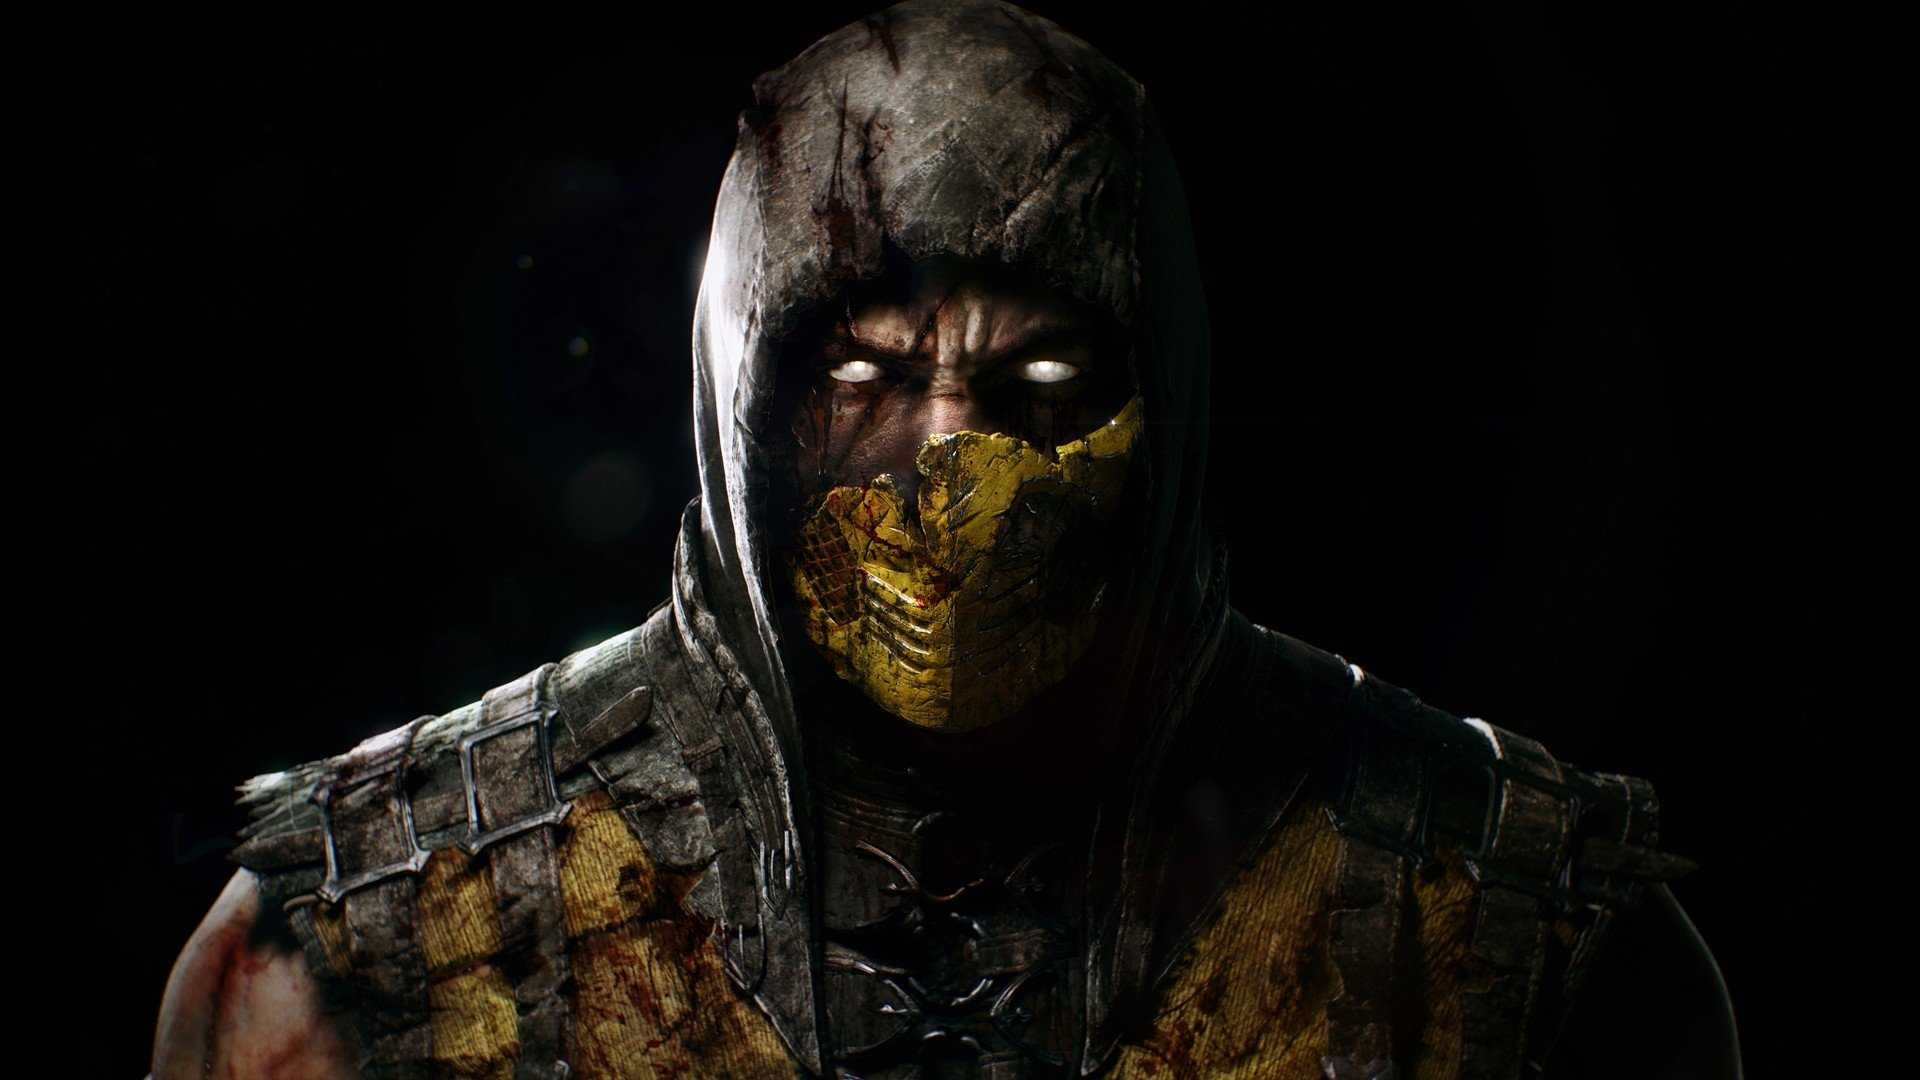 Mortal kombat x hd wallpaper background image - Mortal kombat scorpion wallpaper ...